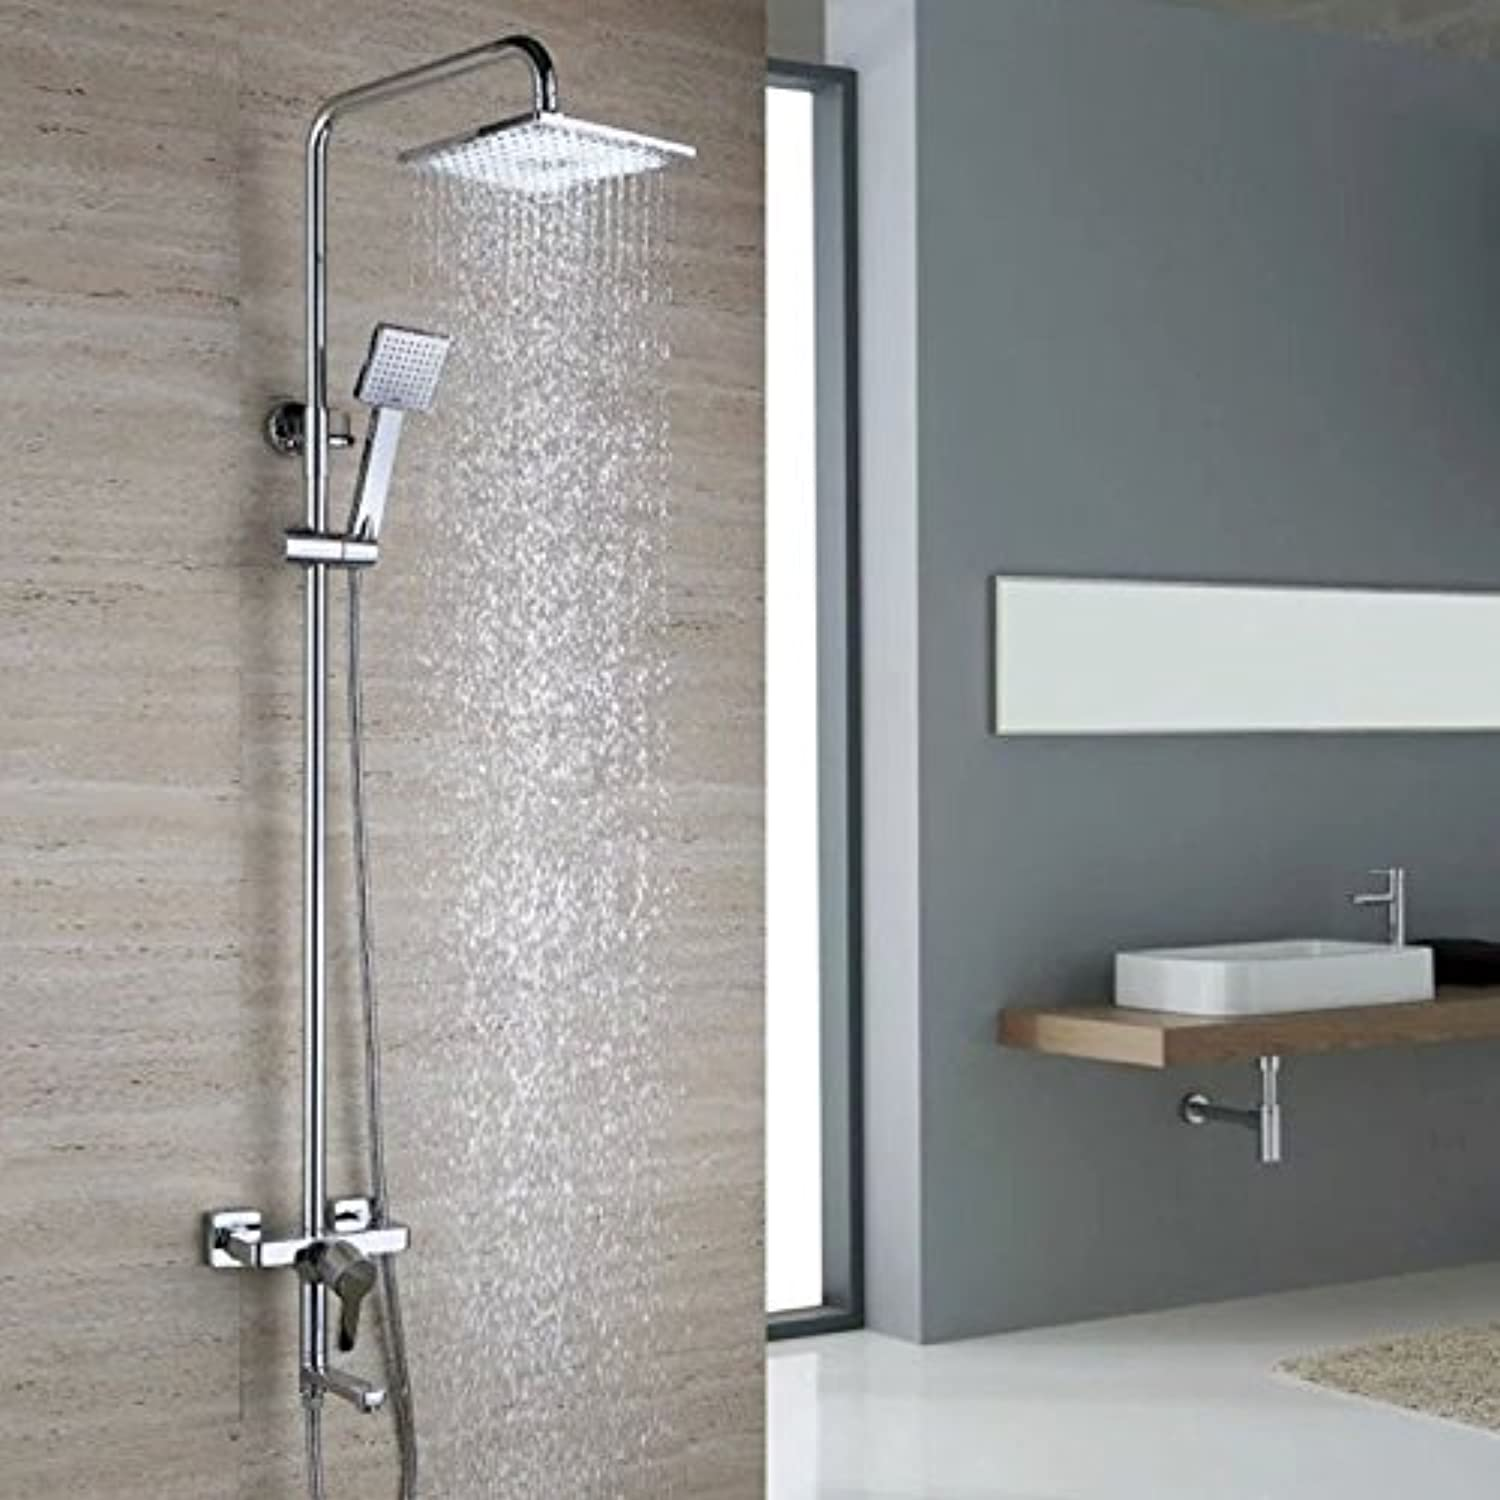 Modern All-Copper to The timely Wall Shower Shower Faucet Cease Shower